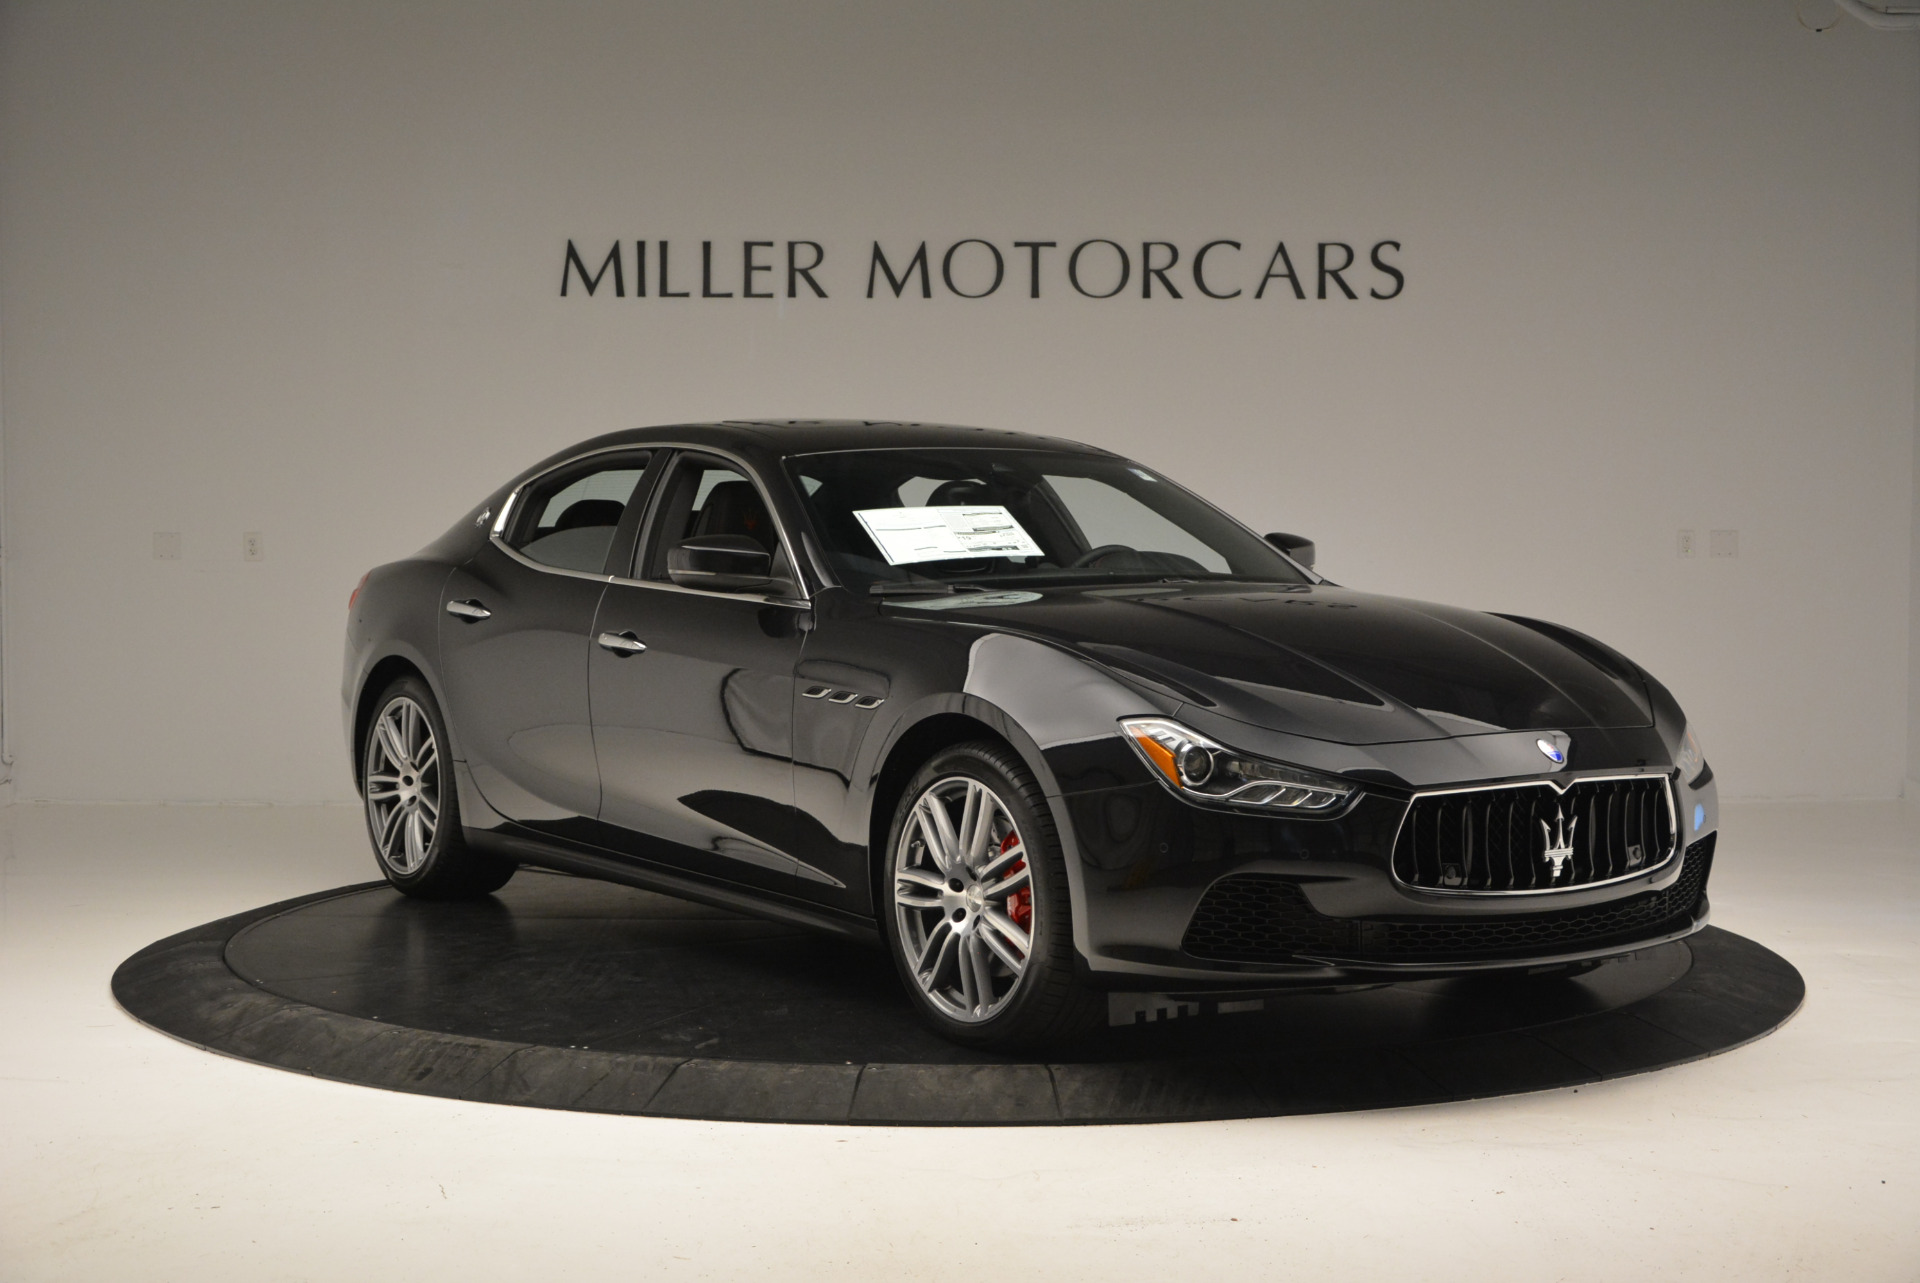 New 2017 Maserati Ghibli S Q4 For Sale In Greenwich, CT 605_p11